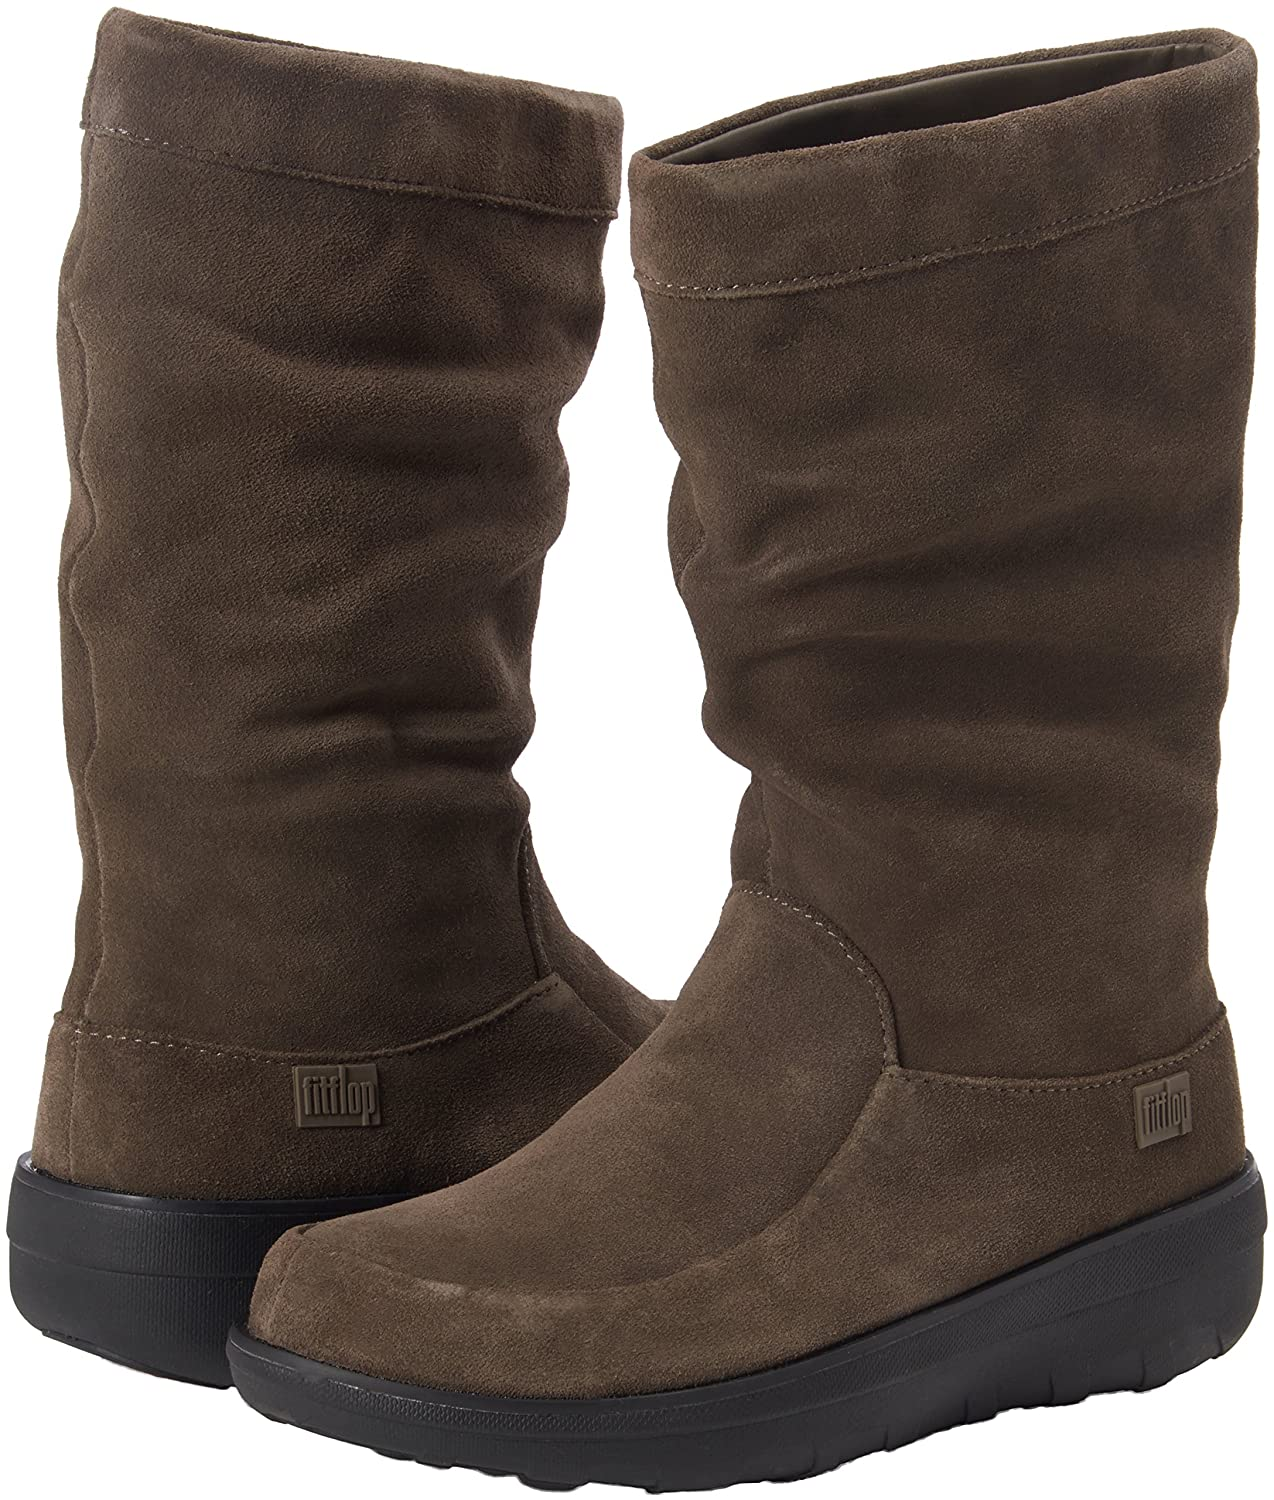 Fitflop Loaff Slouchy Knee Boot - Botas para Mujer, Color Marrón - Brown (Bungee Cord), Talla 37 EU (4 UK)